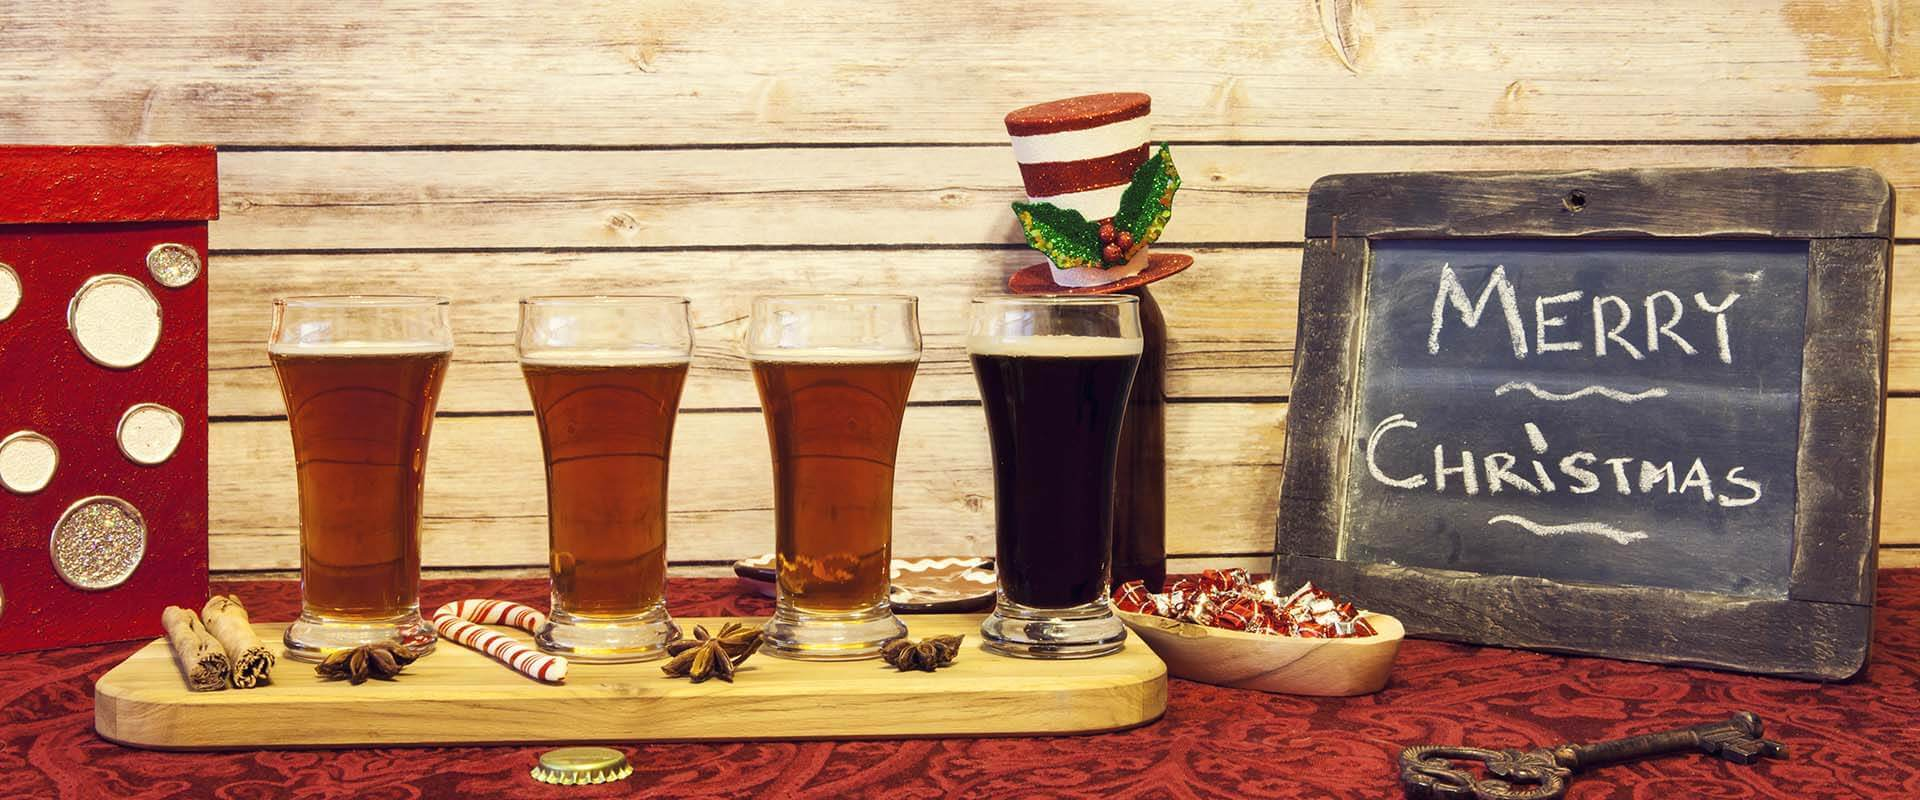 Christmas Gift Baskets with Beer